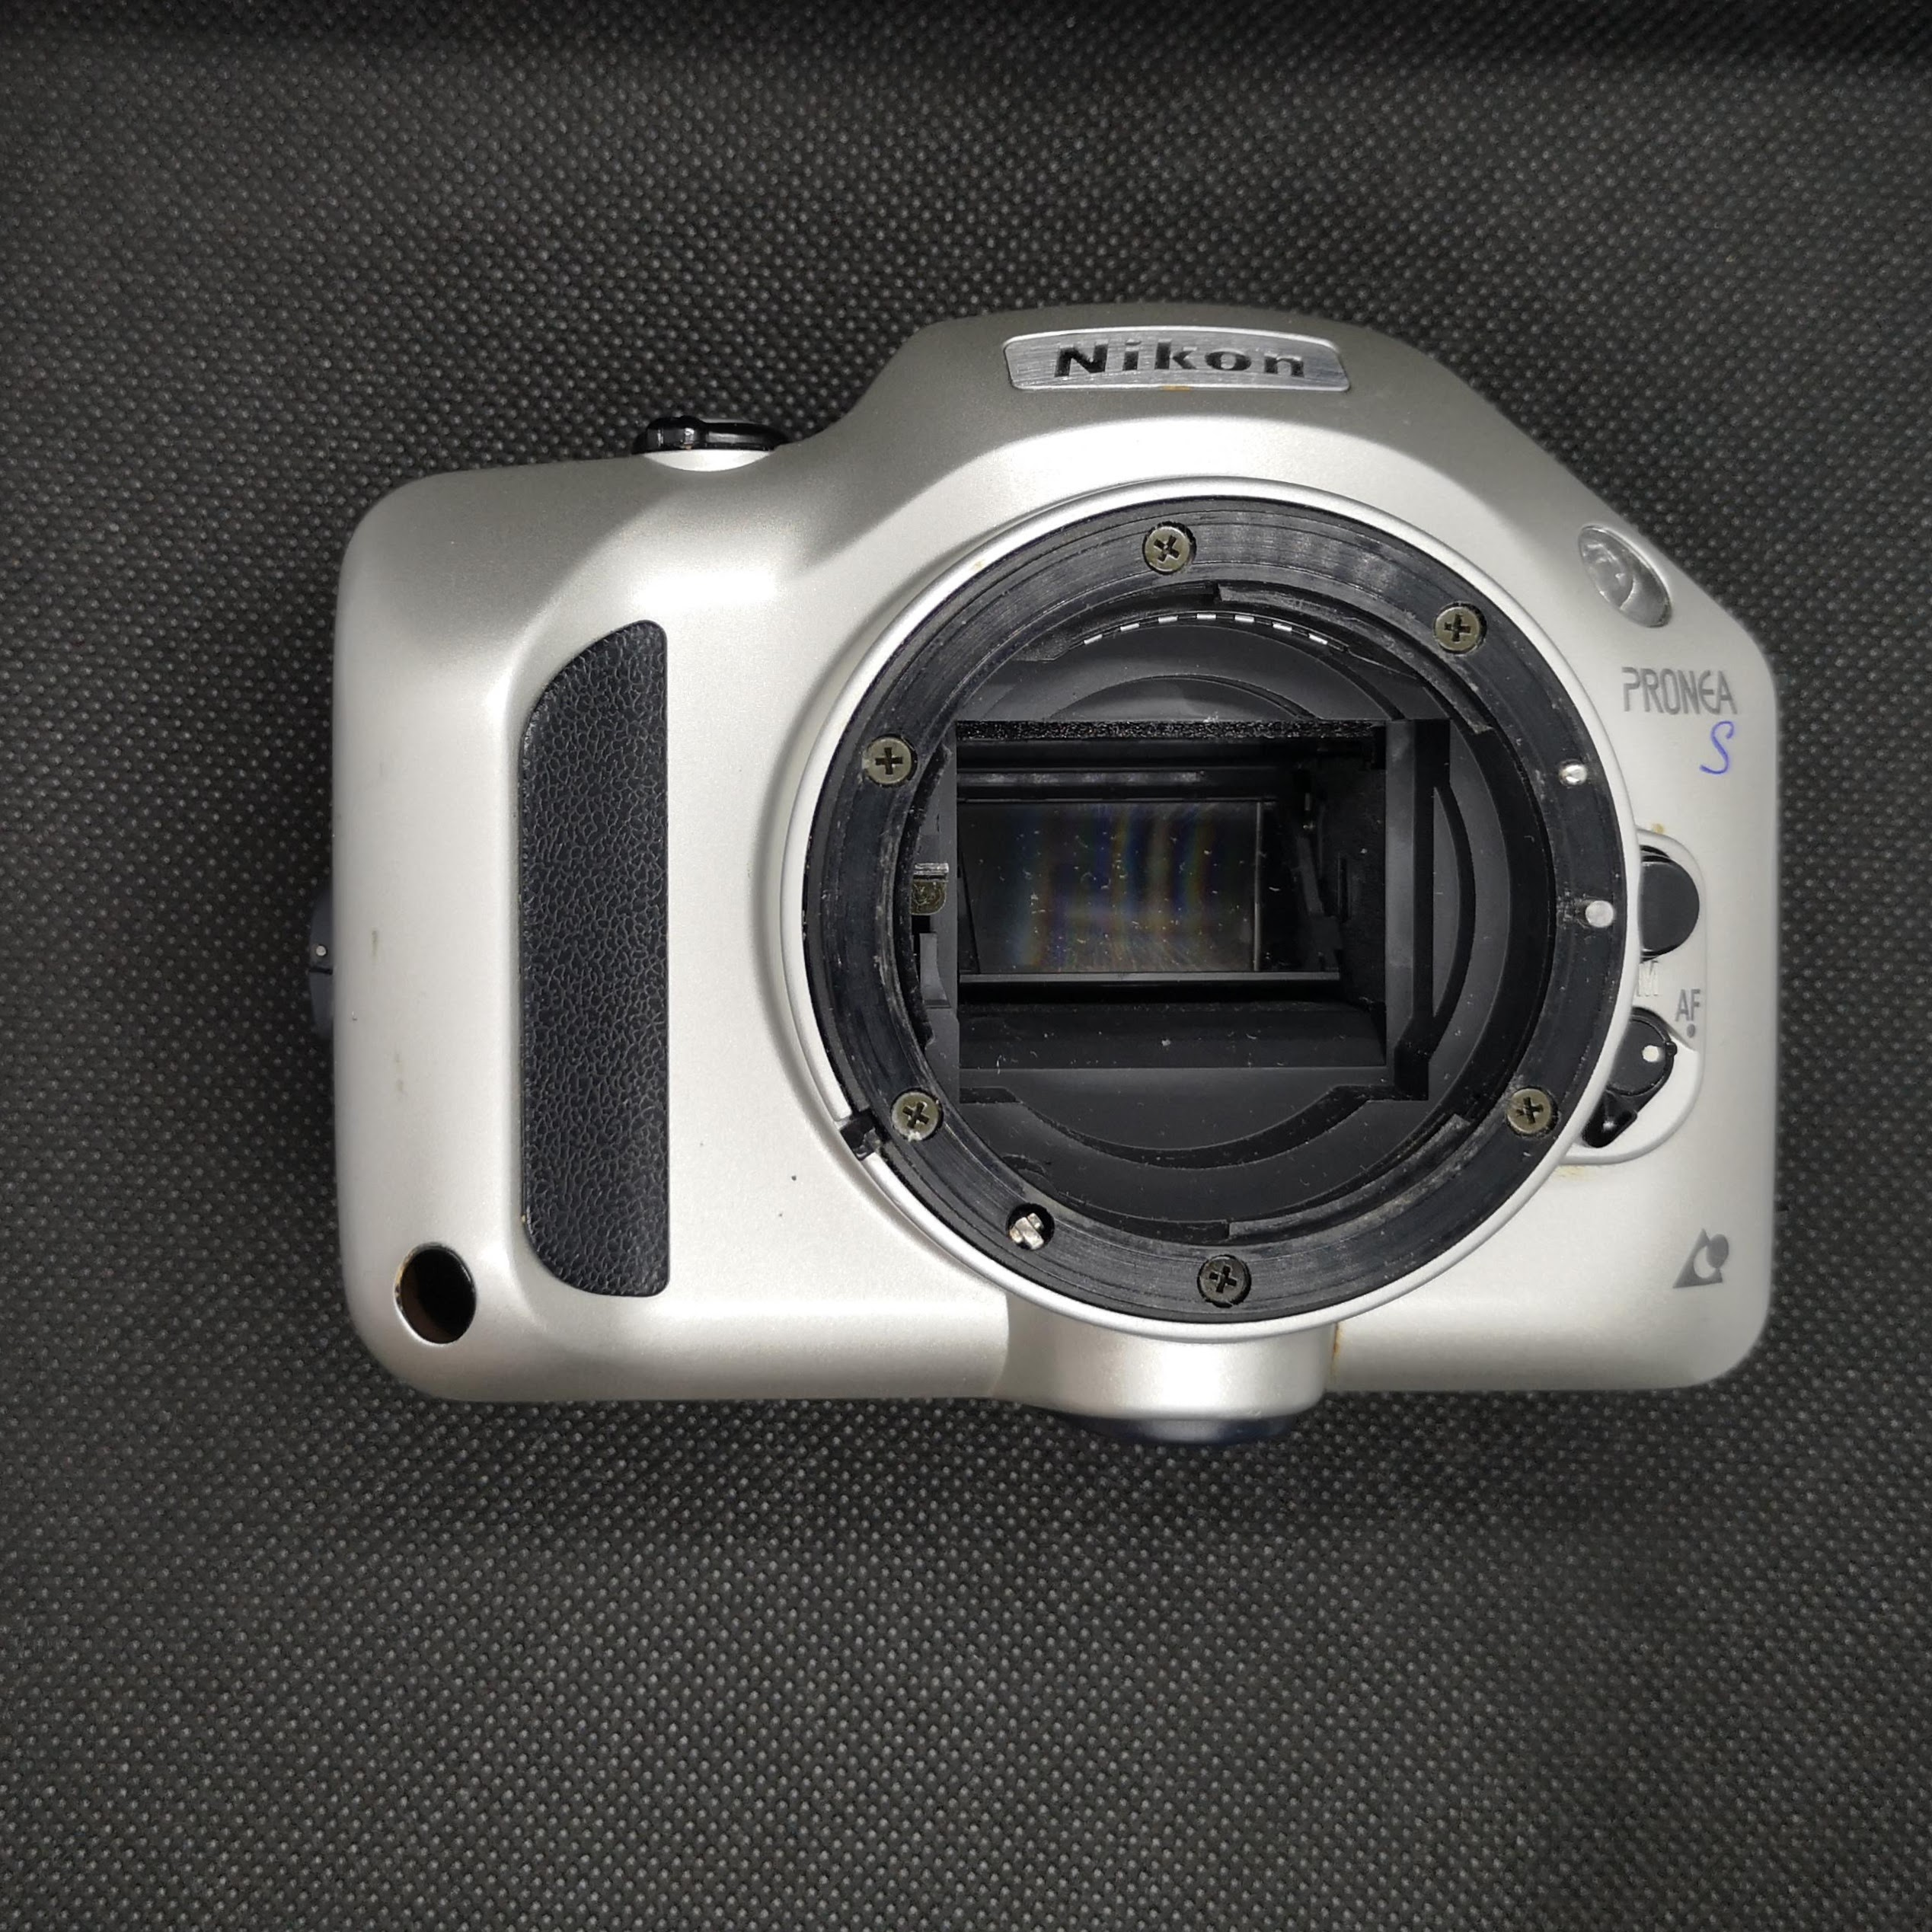 Nikon Pronea S without lens. Note plastic F mount